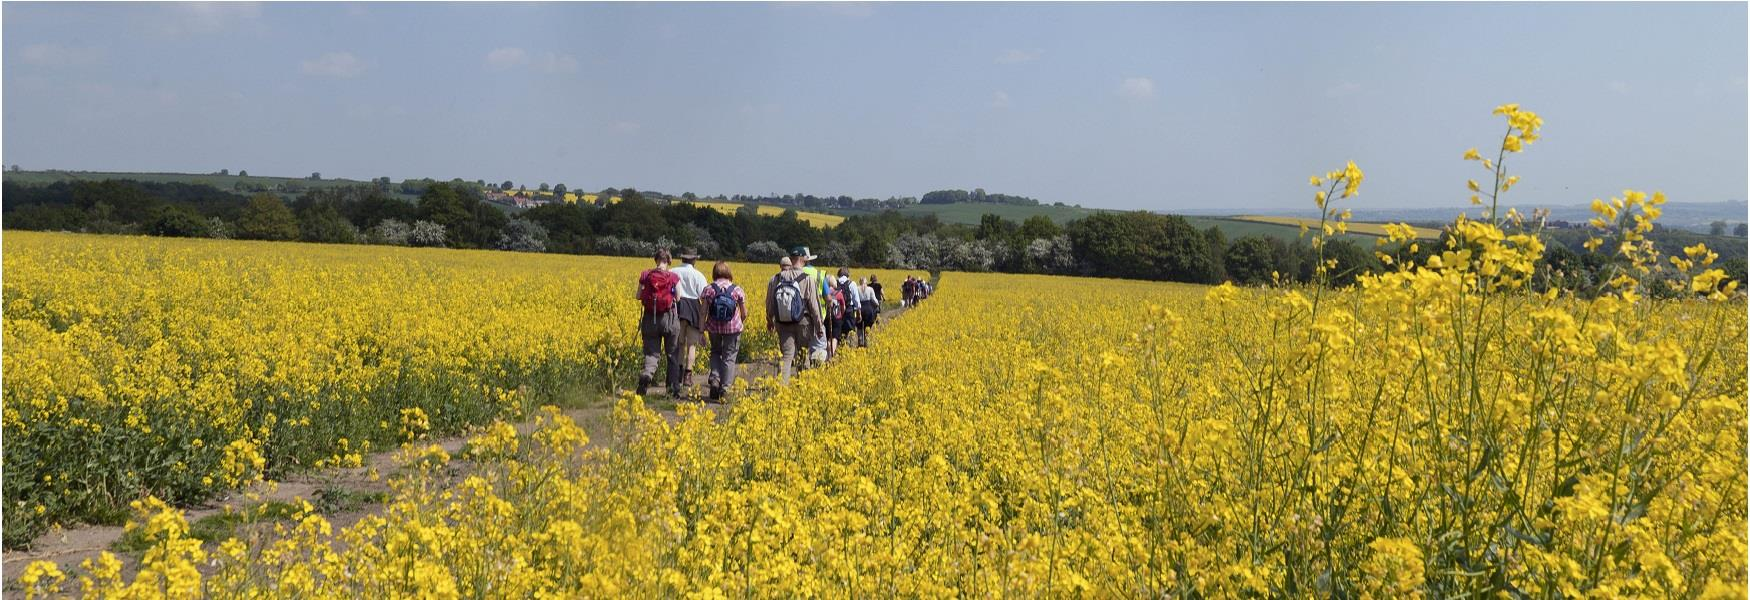 Walkers passing through a field of Oilseed Rape